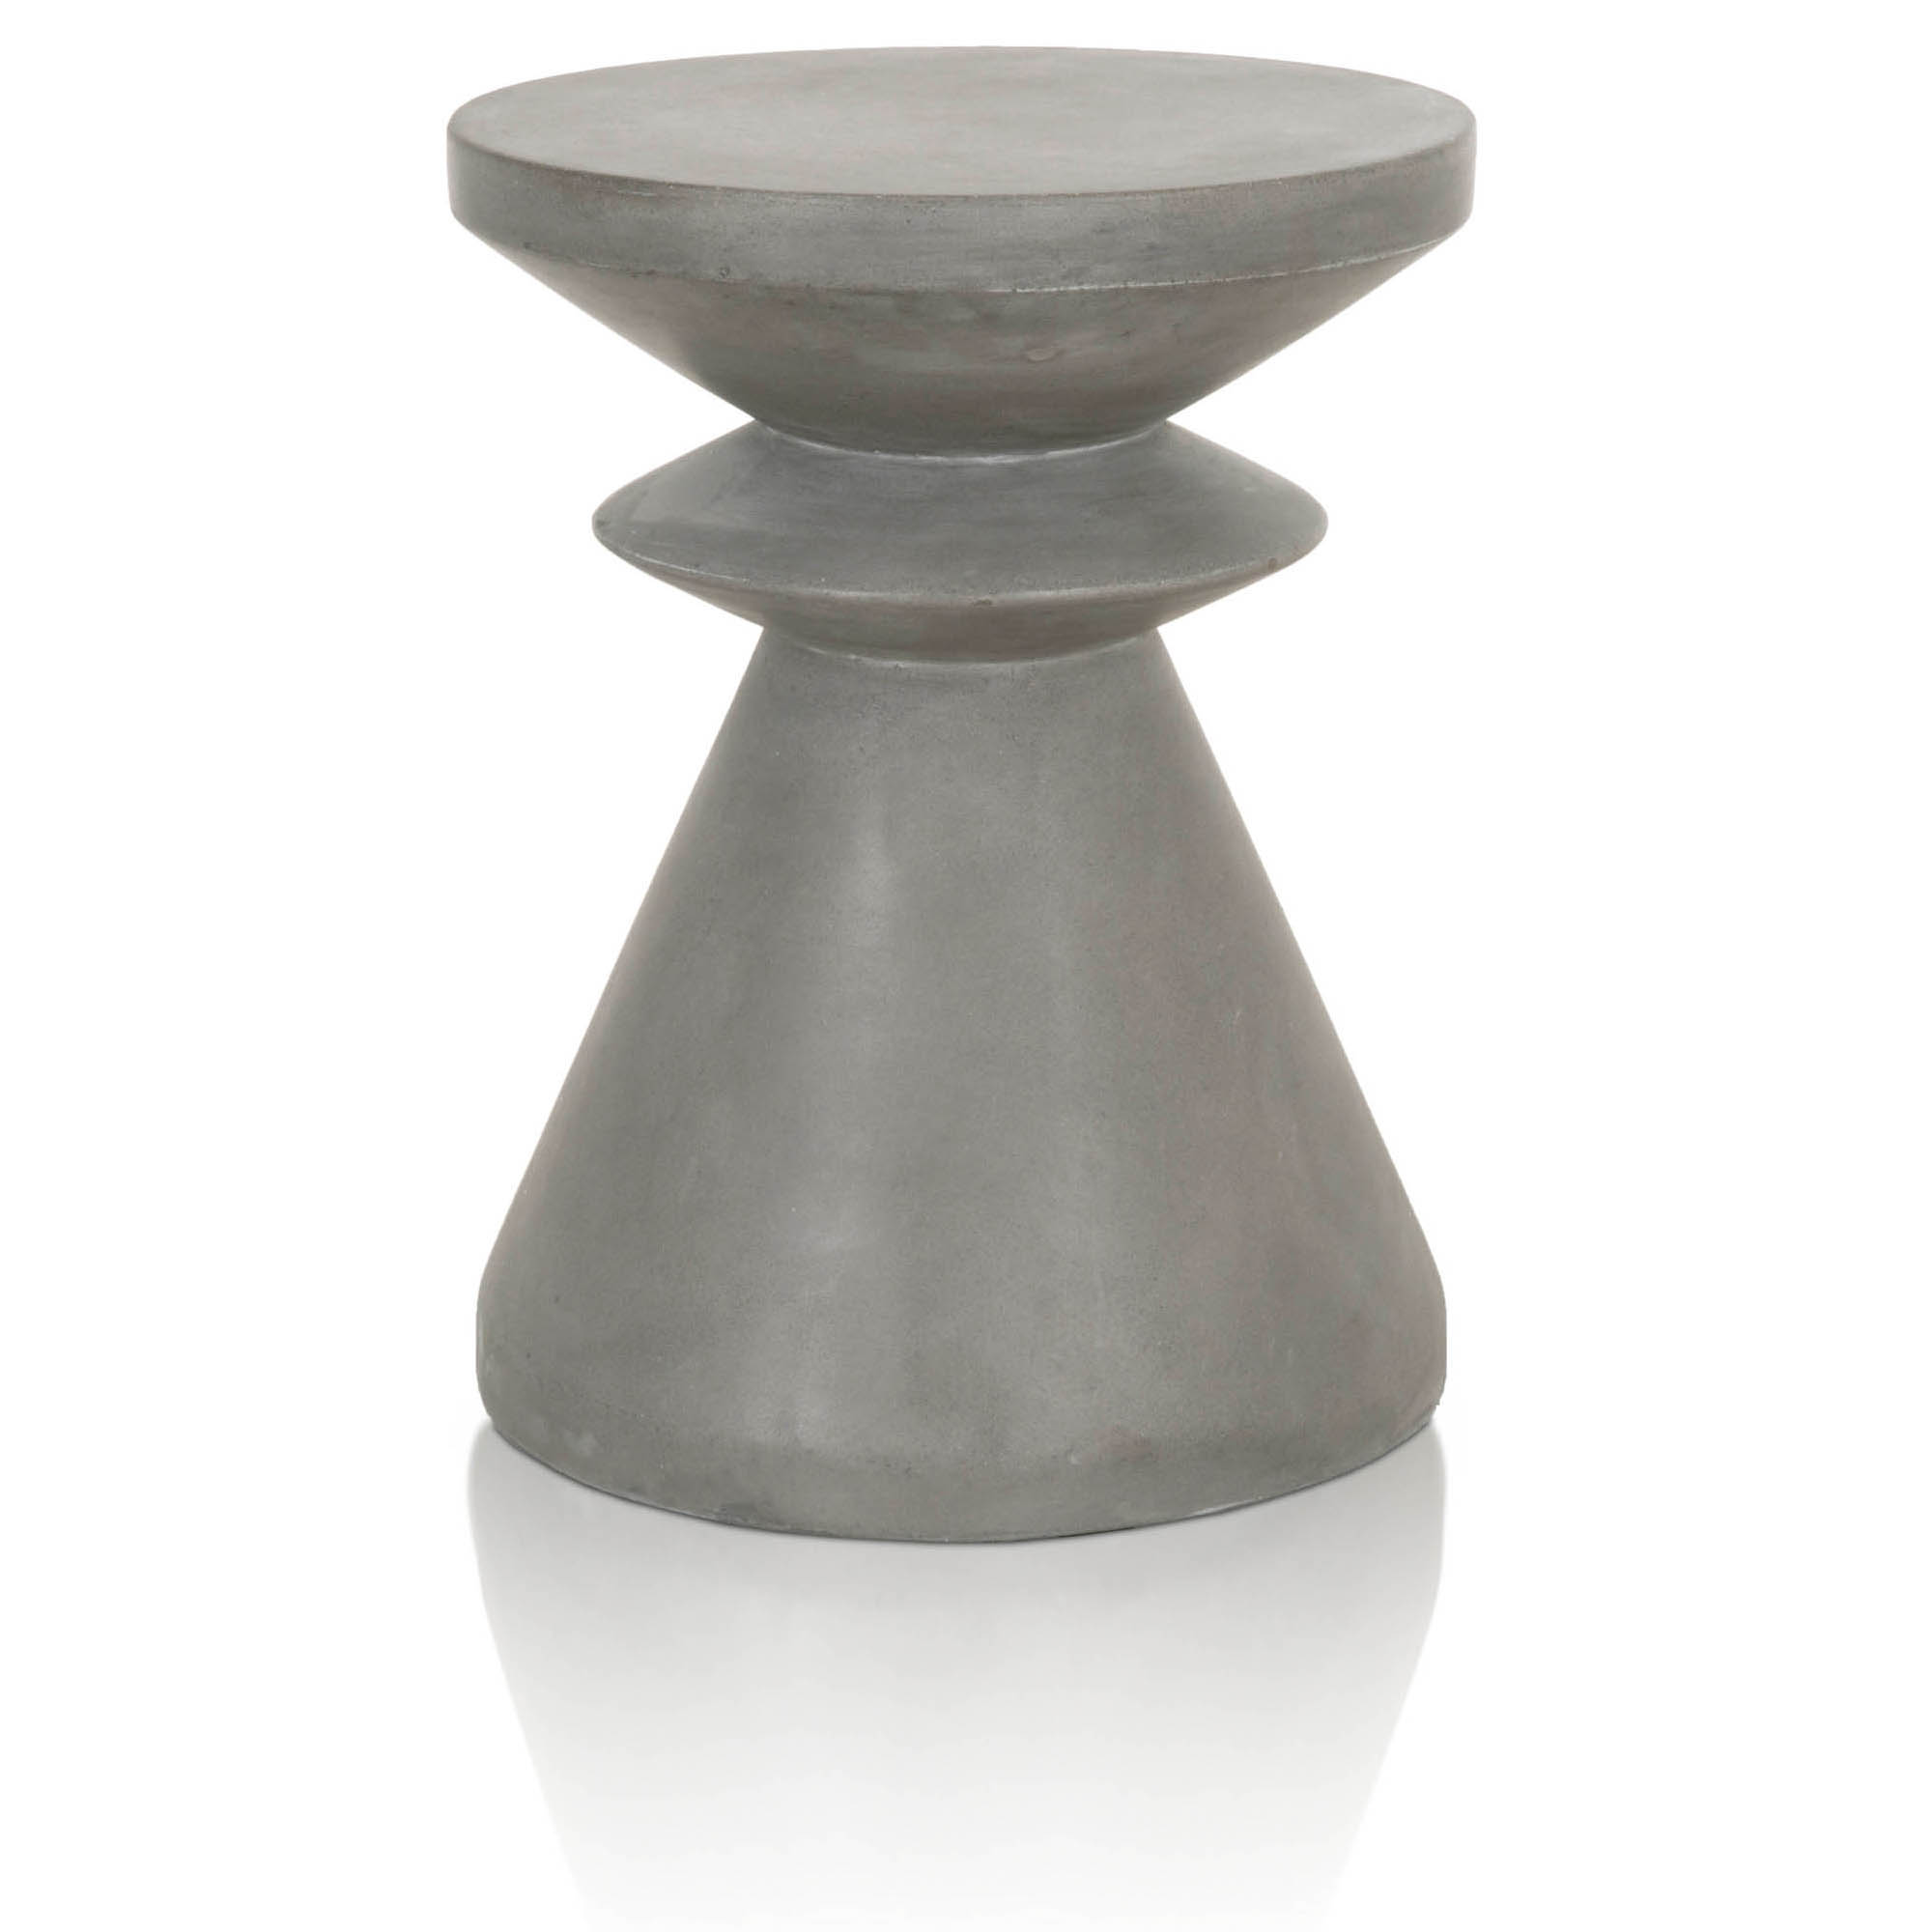 pawn accent table end slate grey concrete white ceramic chairs and cast aluminum coffee small lamp hand painted furniture slim side for less metal cabinet legs target floor rugs